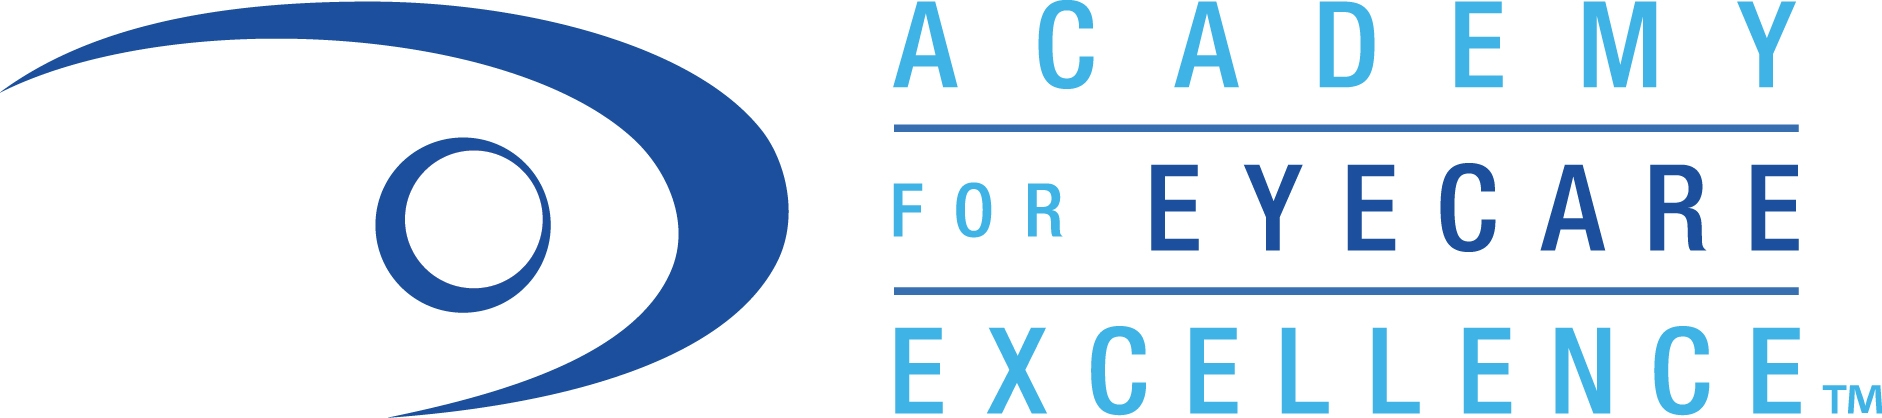 Alcon Academy for Eyecare Excellence